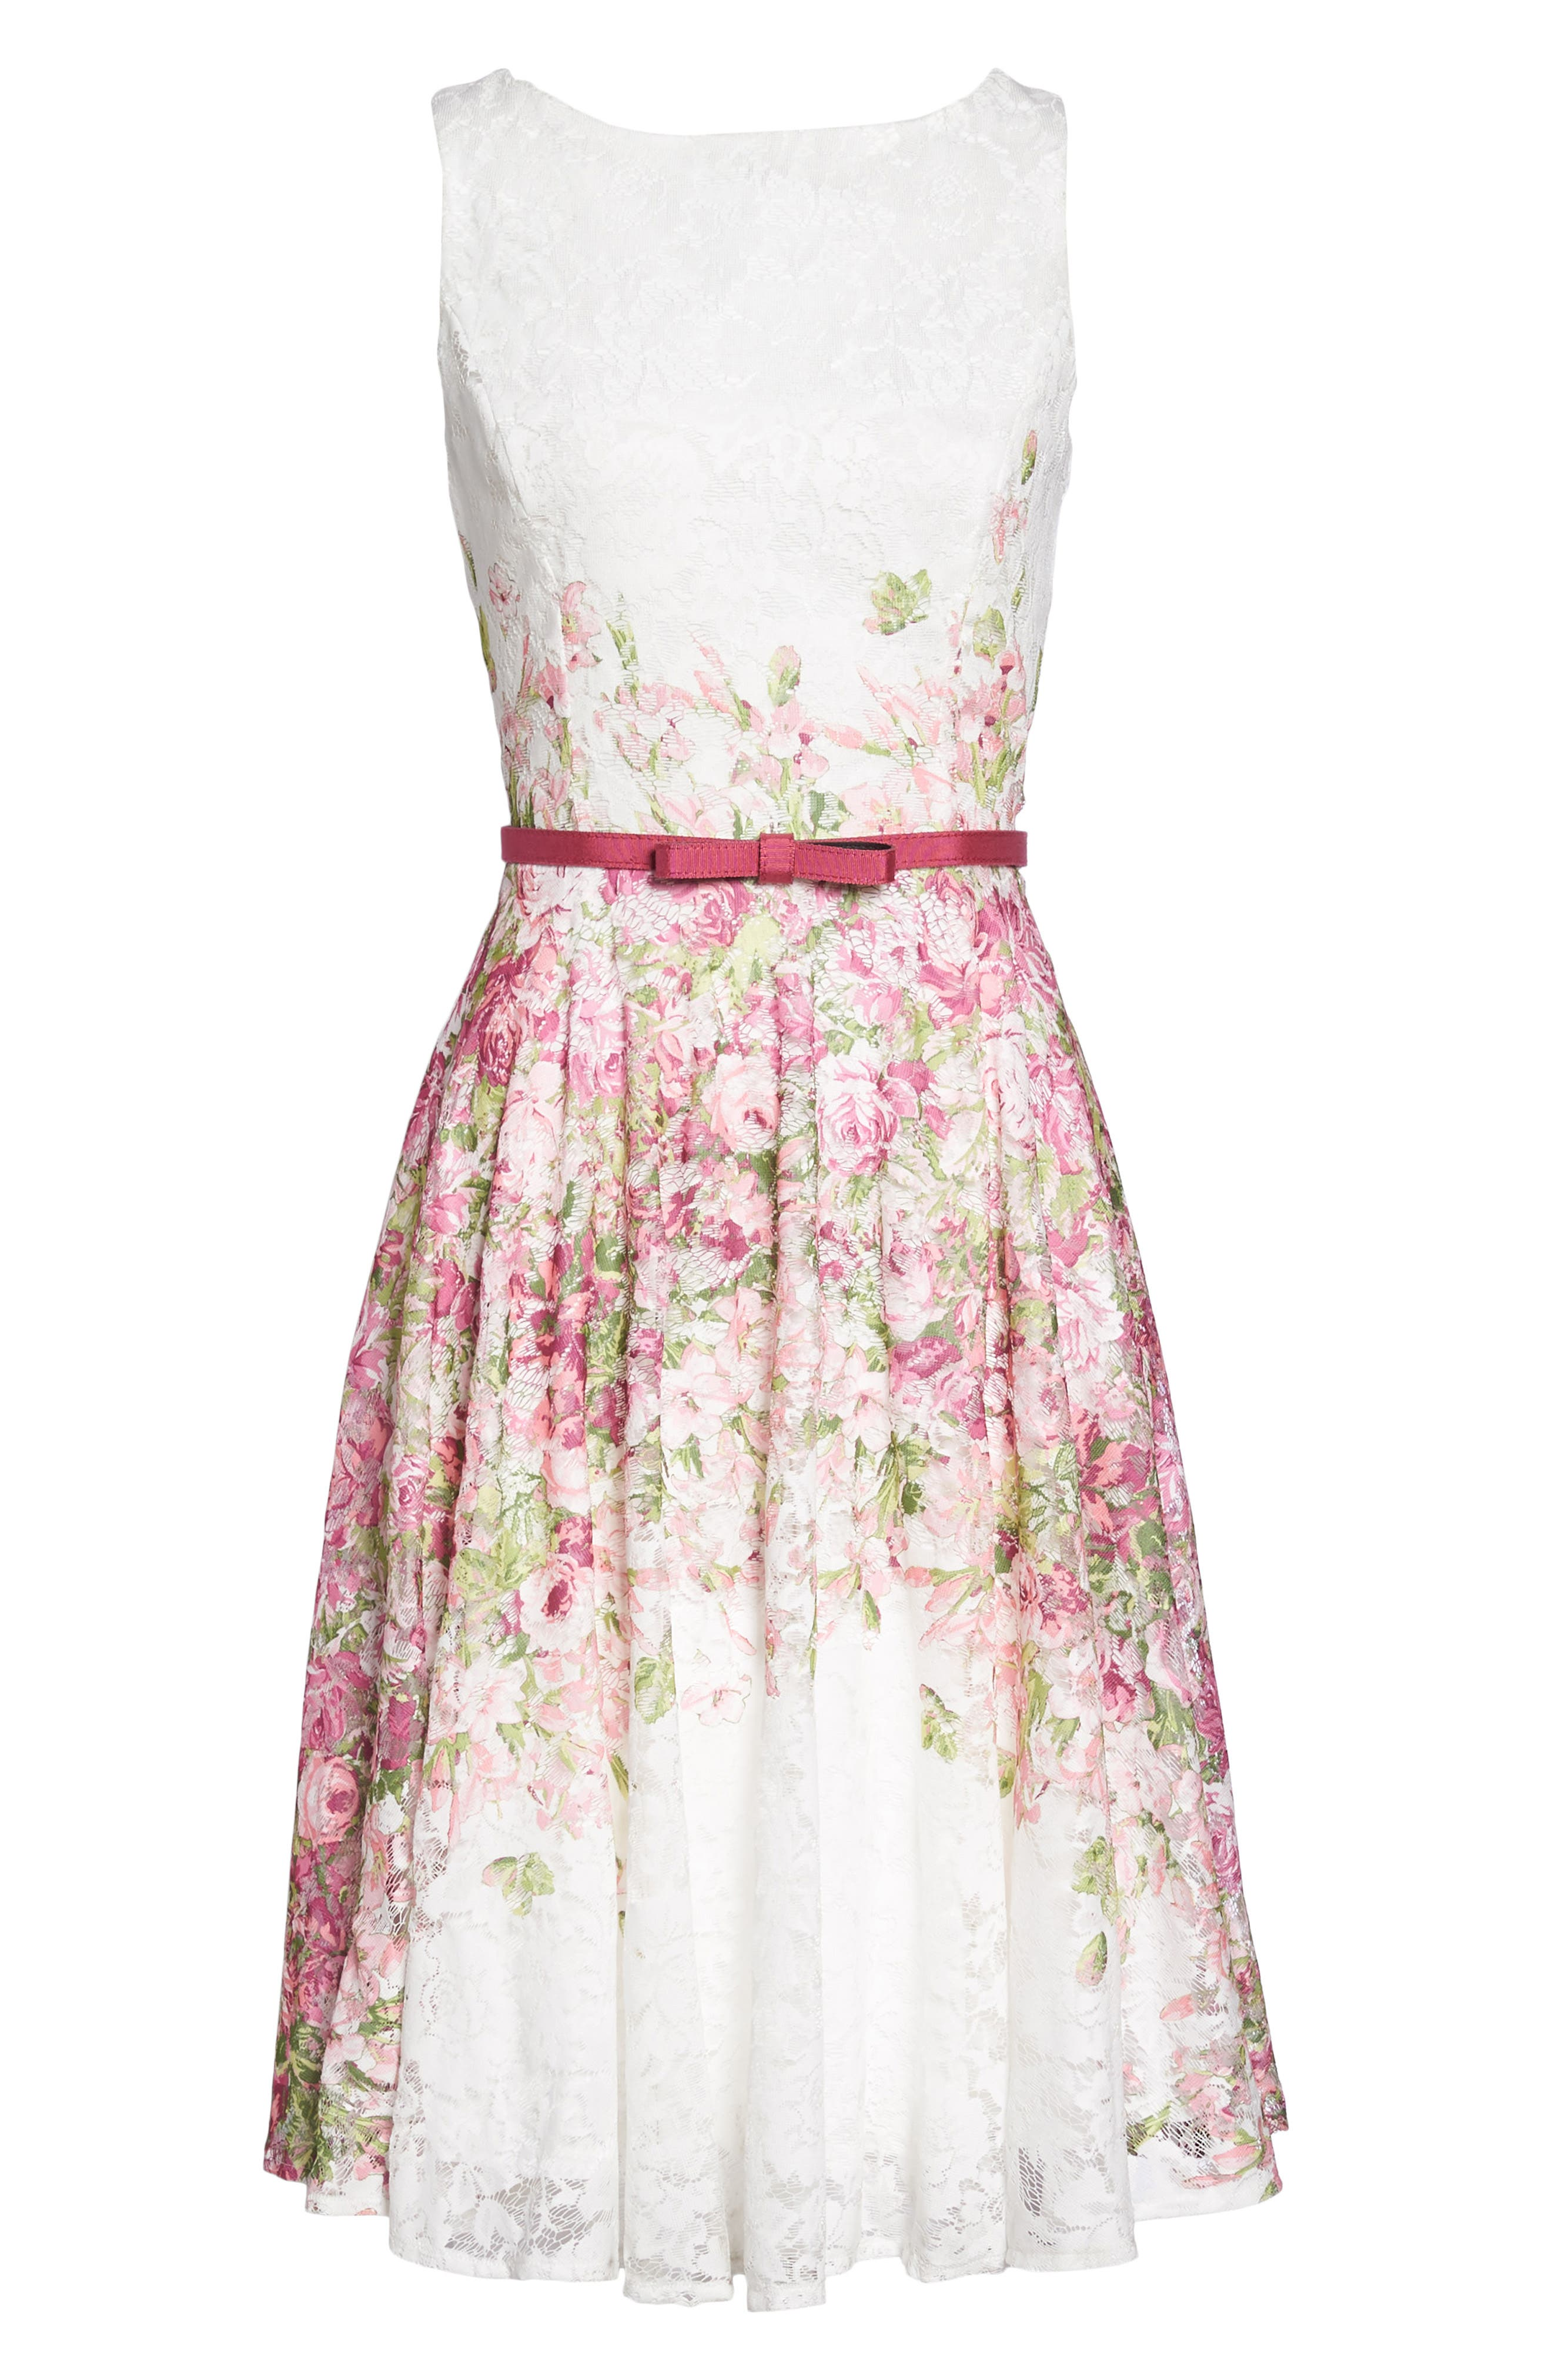 Belted Floral Lace Fit & Flare Dress,                             Alternate thumbnail 6, color,                             650